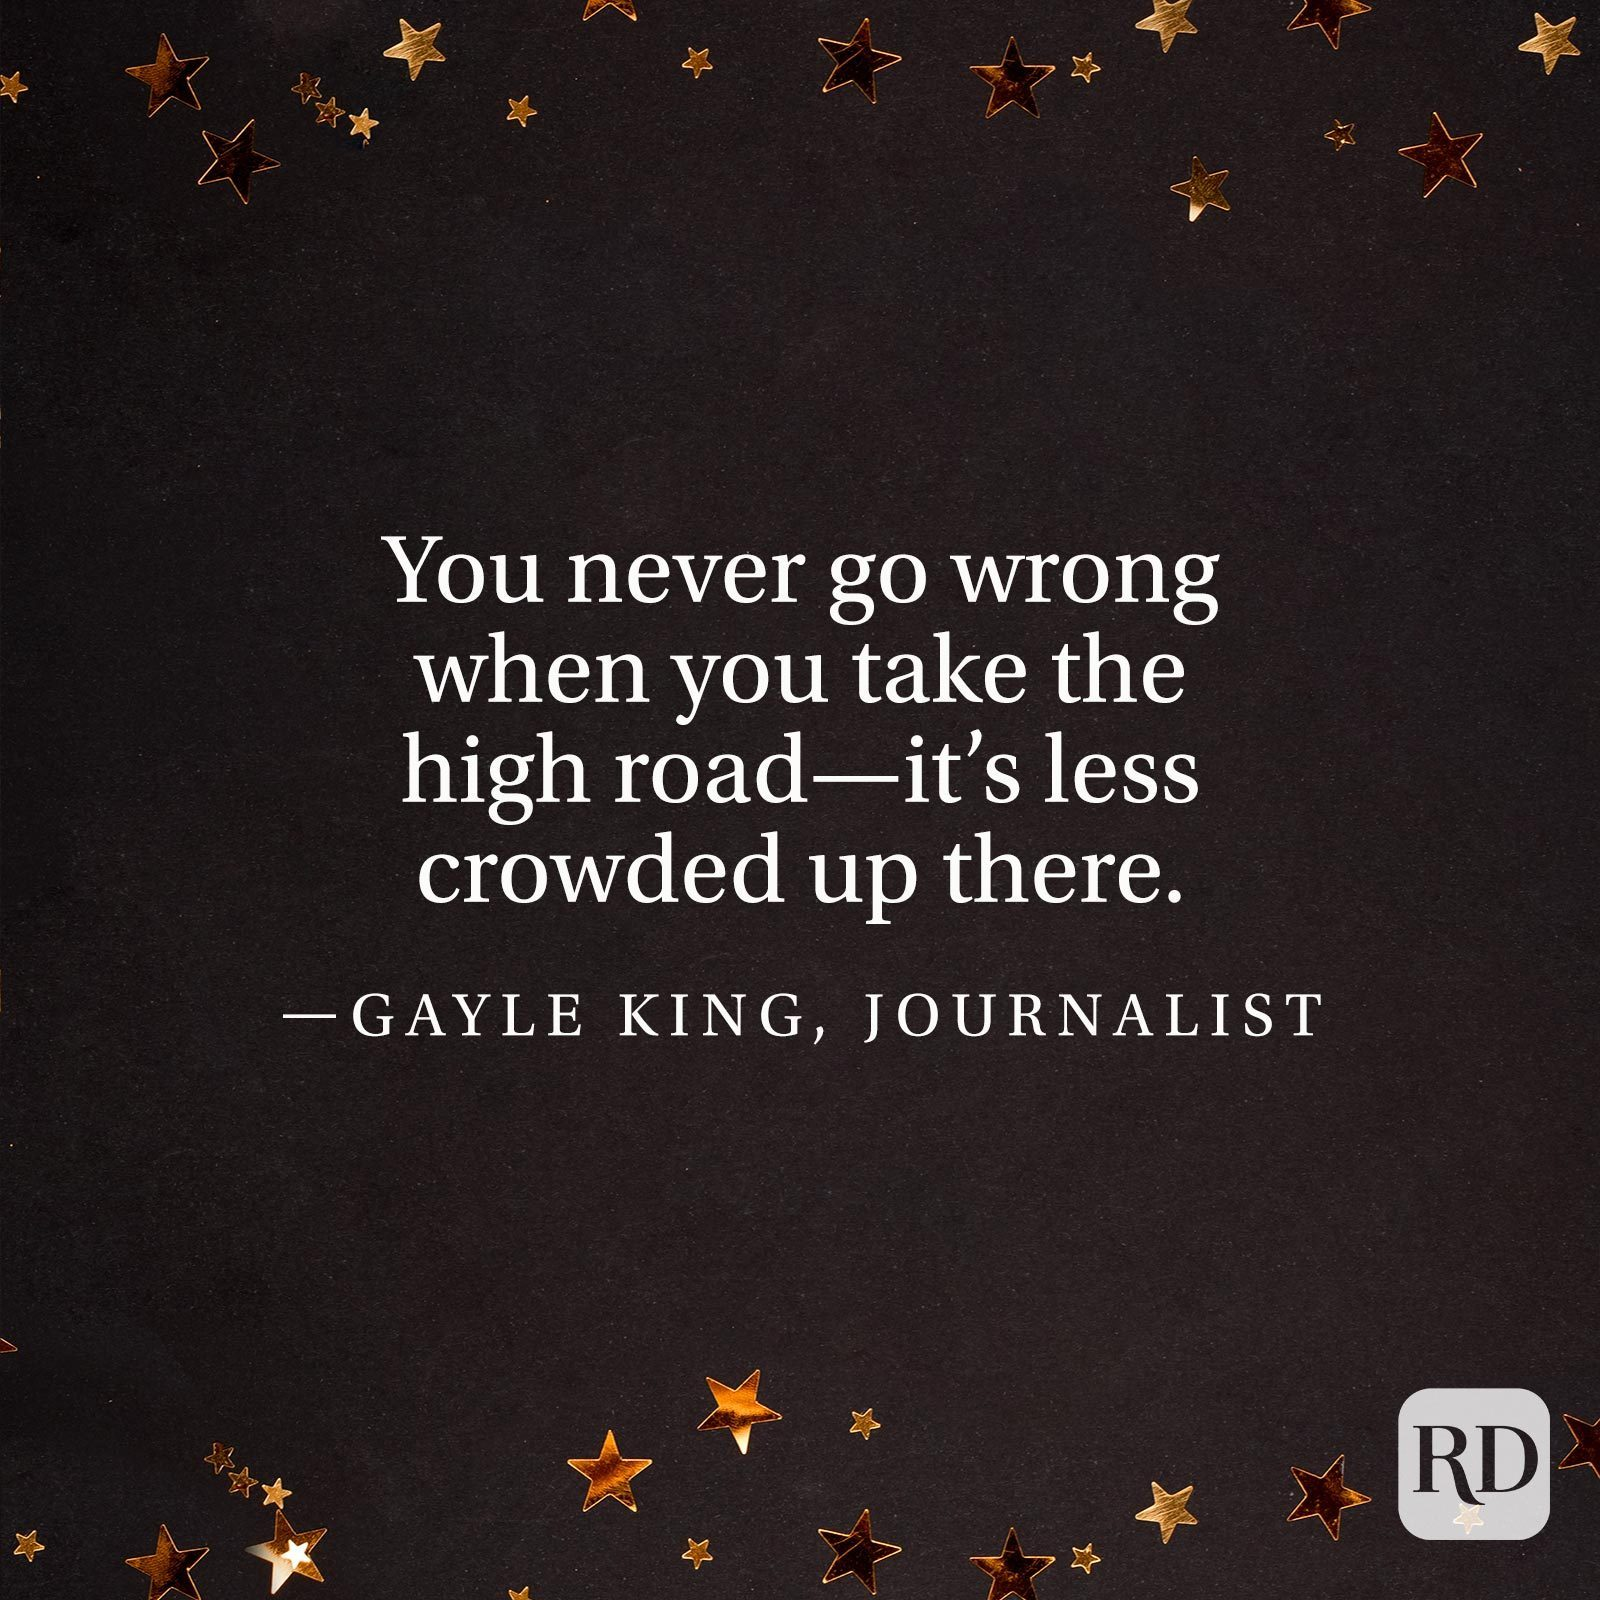 """""""You never go wrong when you take the high road—it's less crowded up there."""" —Gayle King, journalist"""